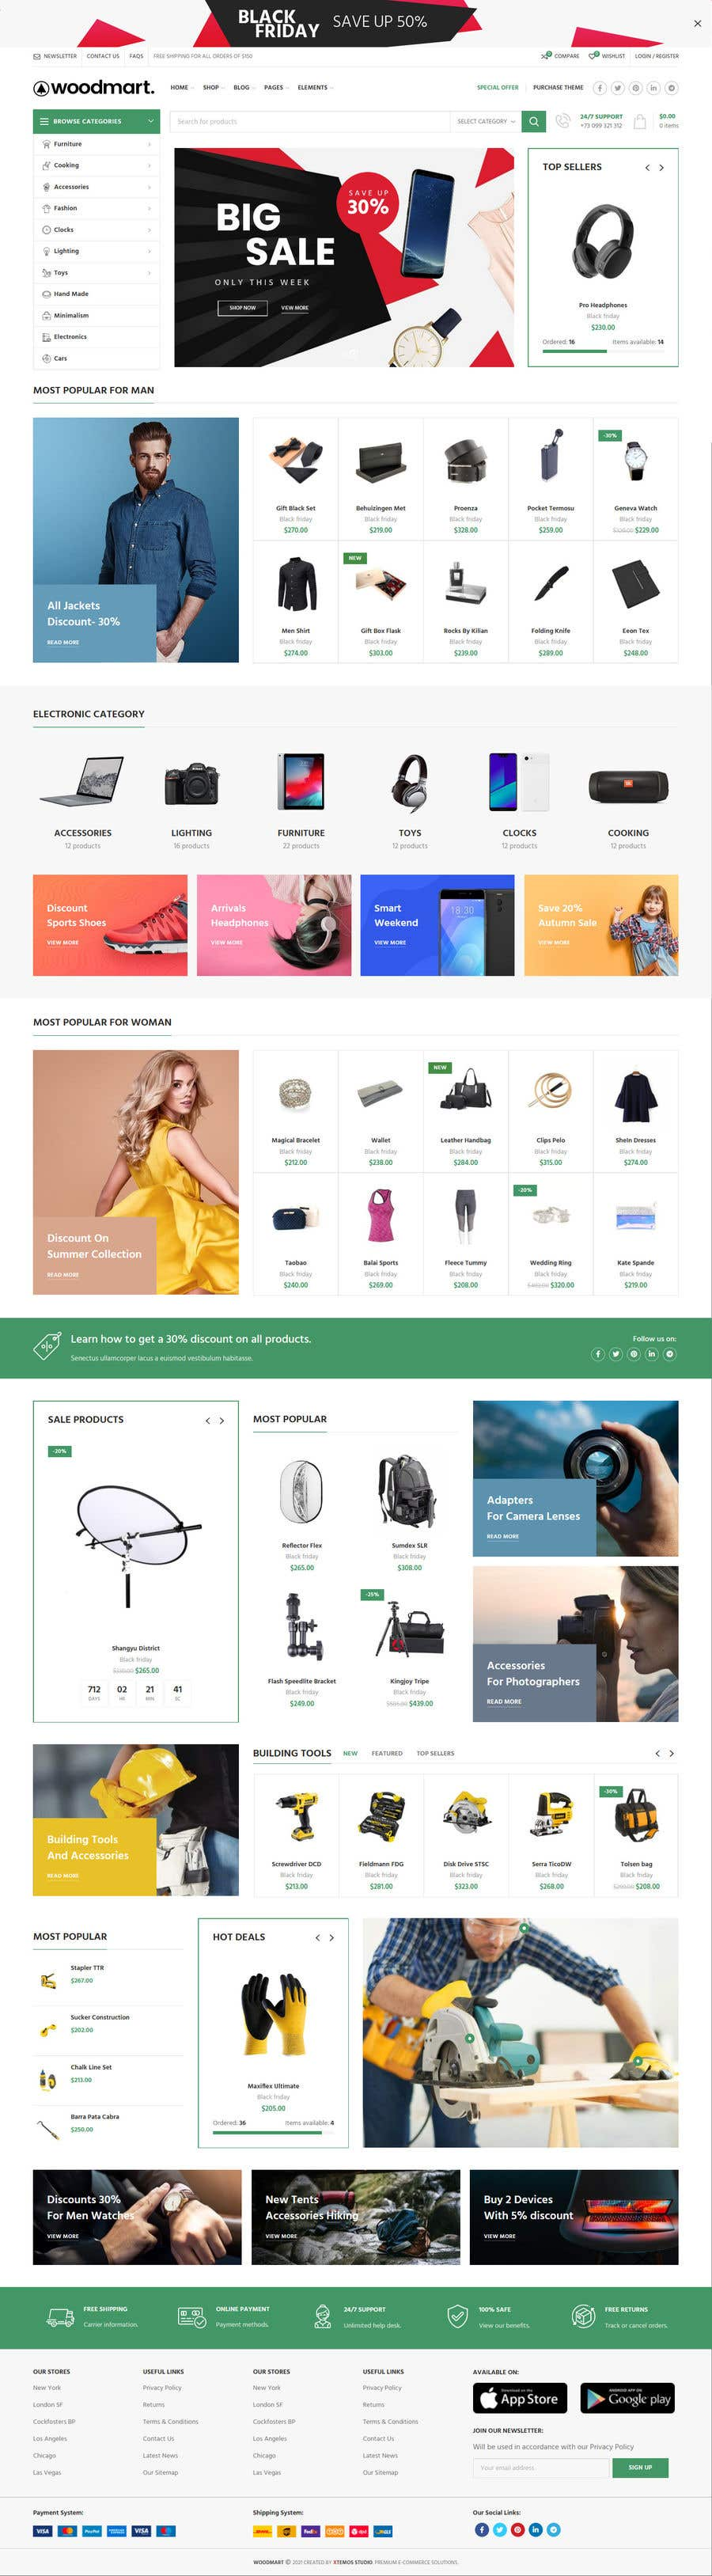 Bài tham dự cuộc thi #                                        10                                      cho                                         I need a Landing Page Website for Small Business Stores